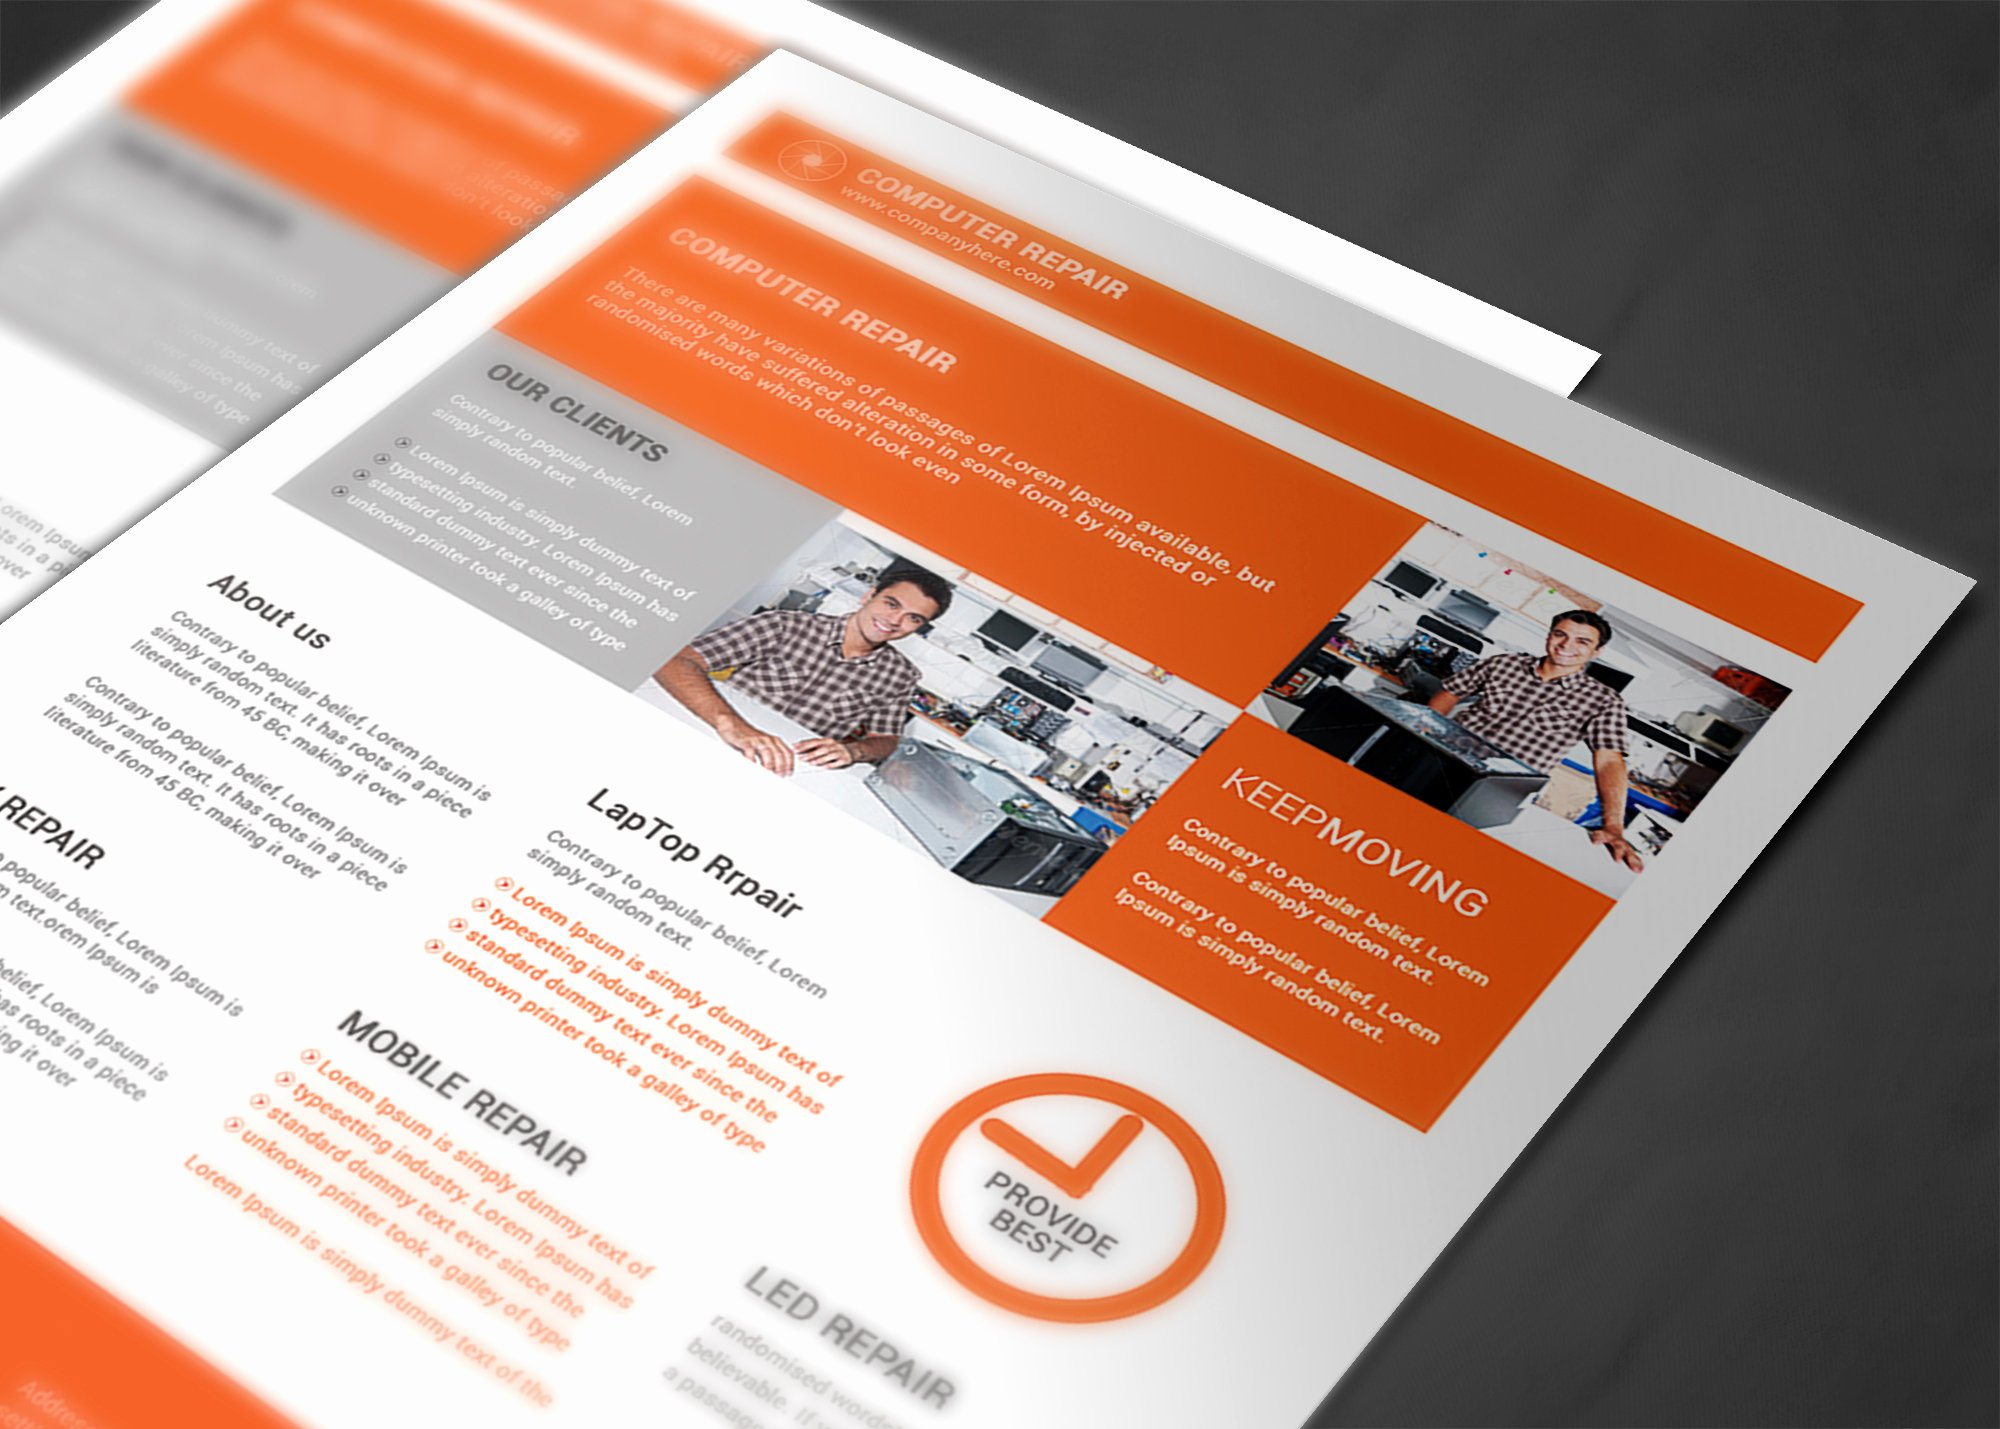 Computer Repair Flyer Templates Elegant Puter Repair Flyer Template Flyer Templates On